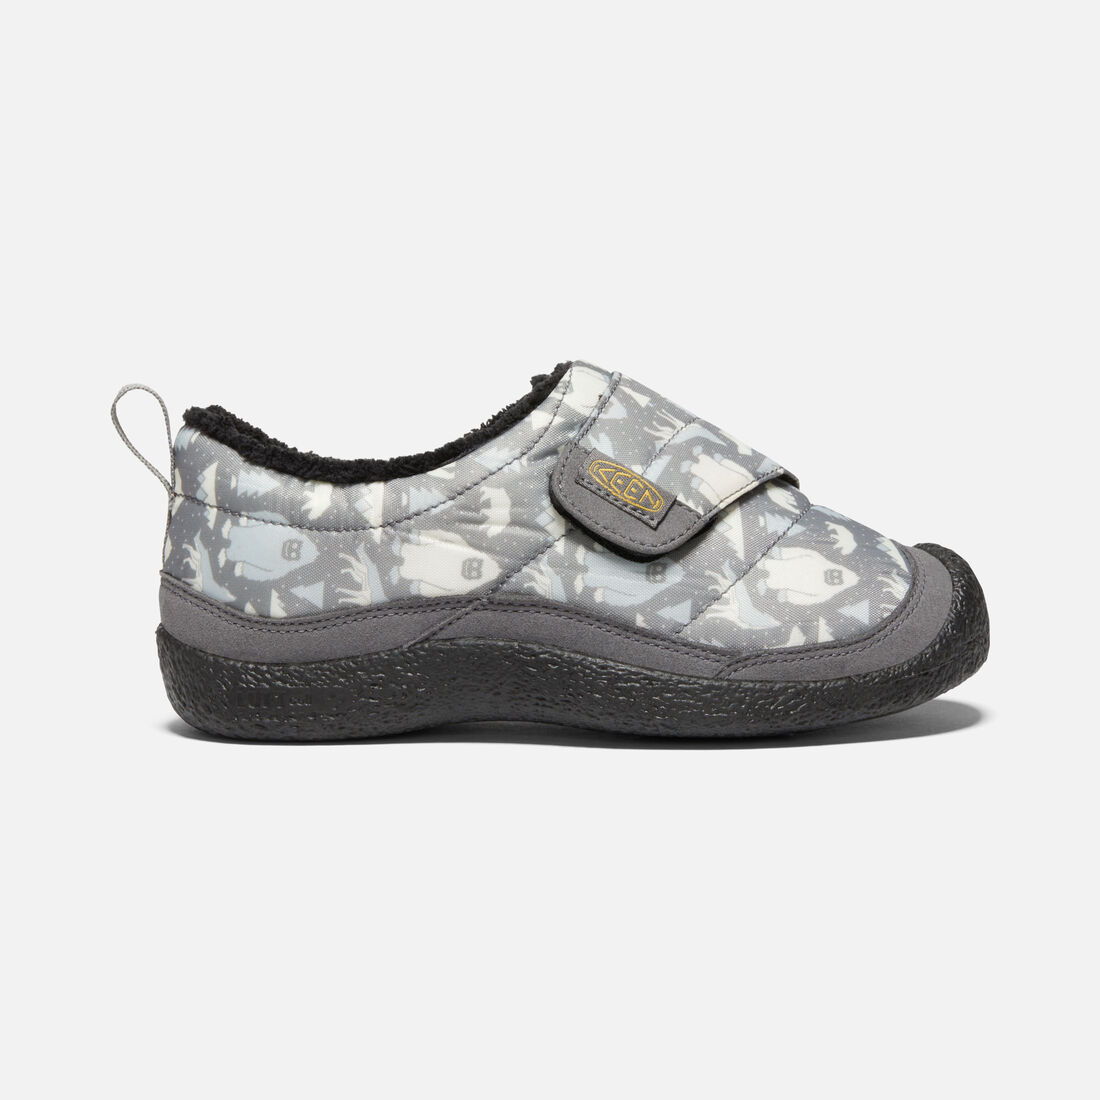 Big Kids' Howser Wrap in Steel Grey/Star White - large view.